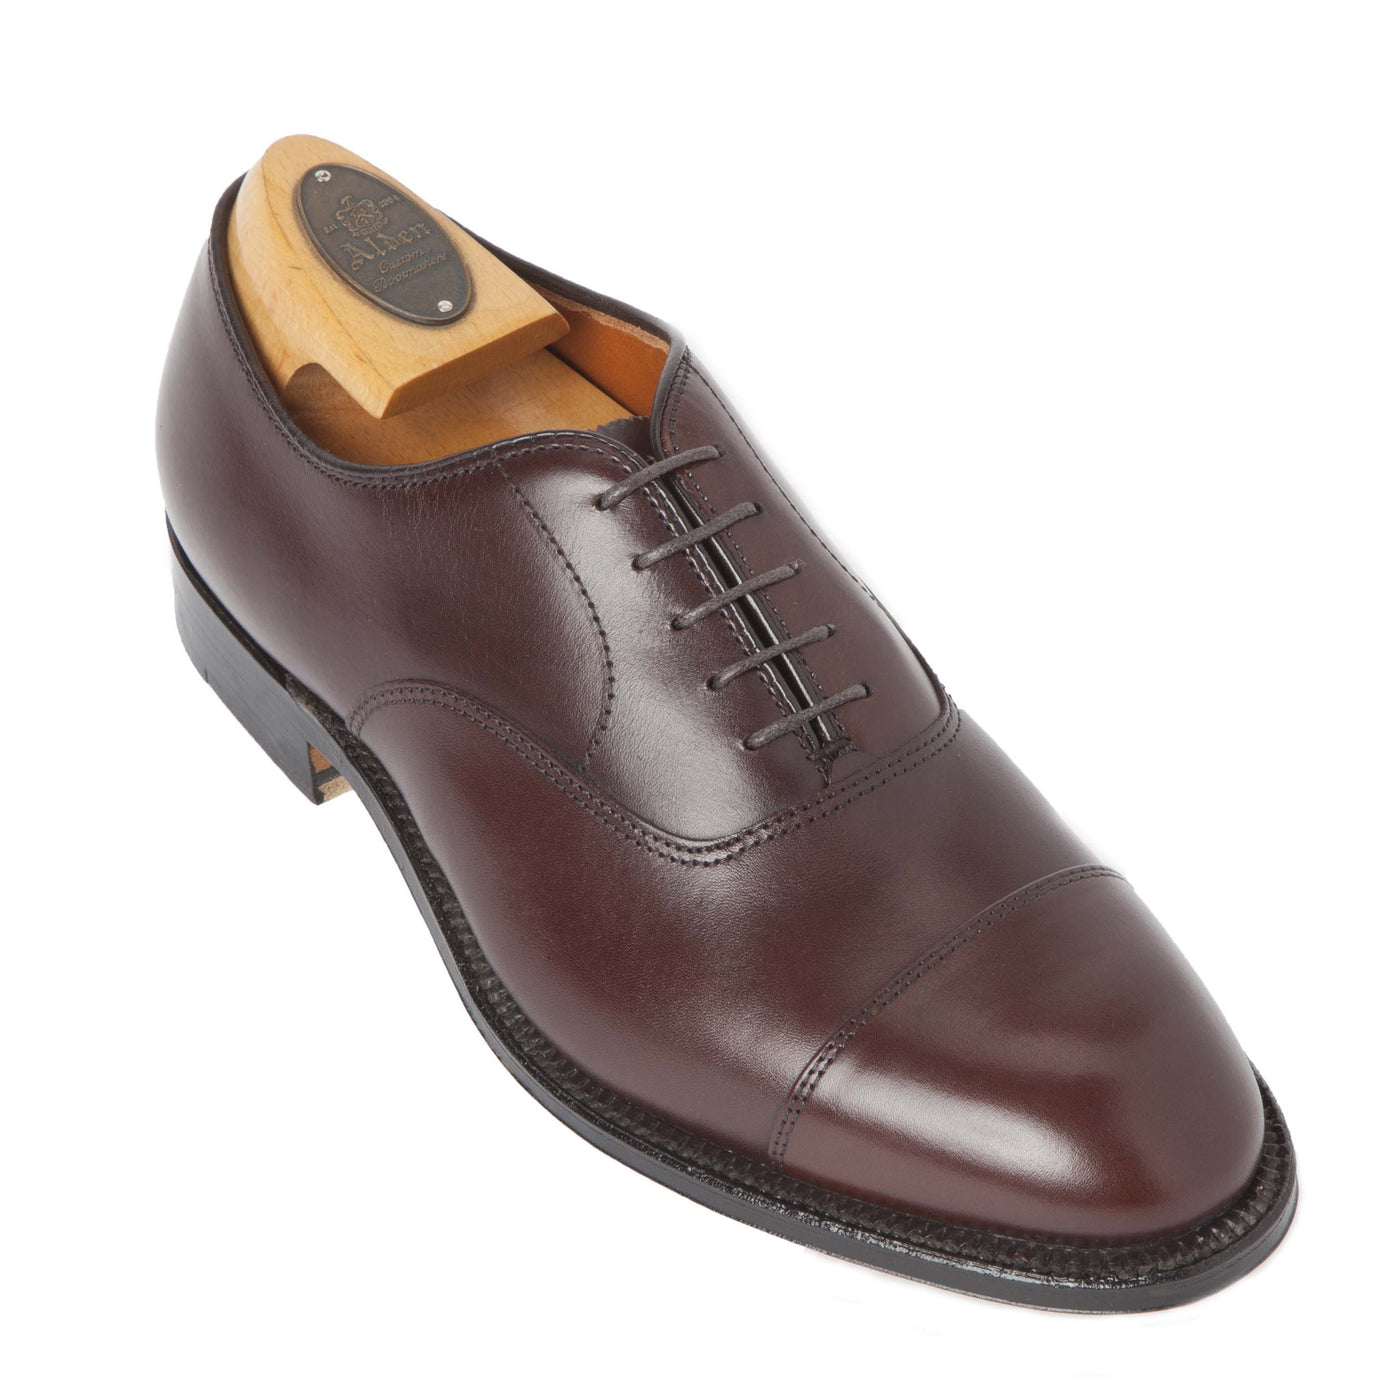 Alden Shoes | 920 Dress Oxfords - GARYS